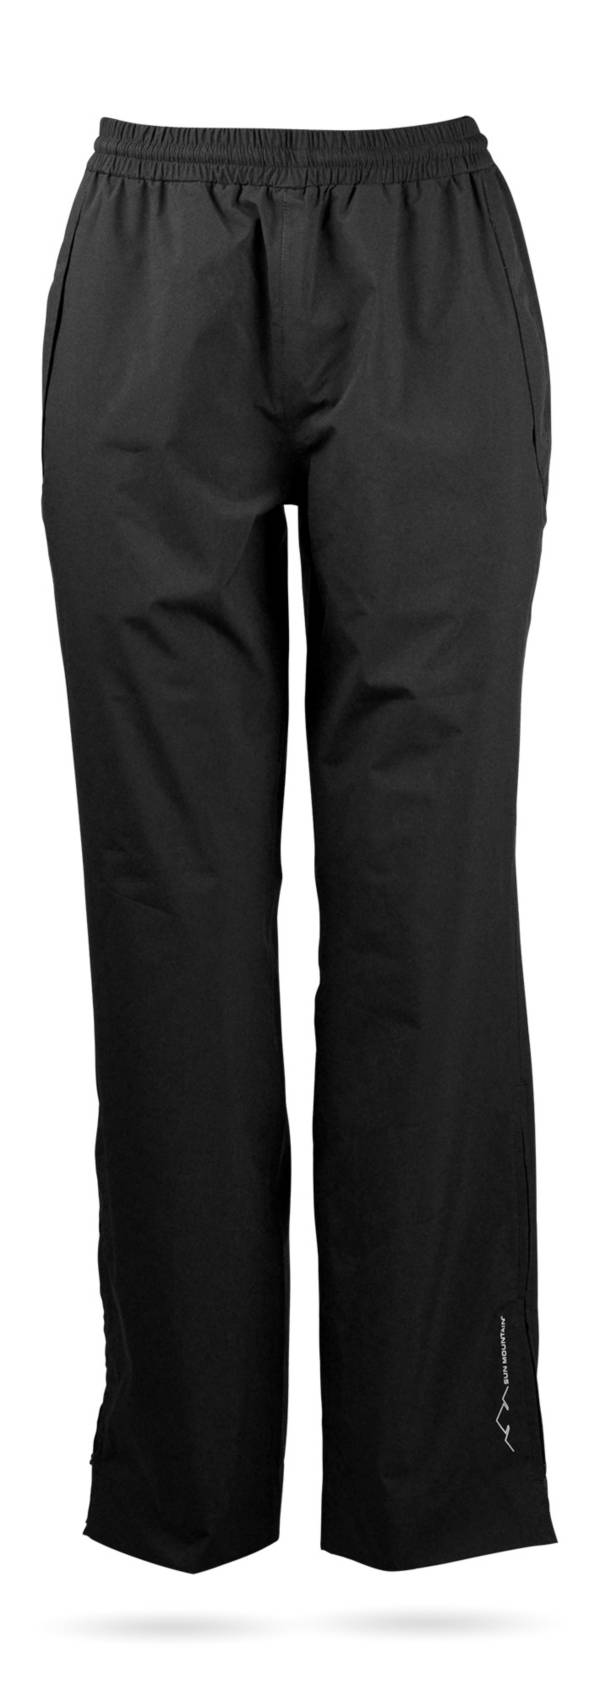 Sun Mountain Women's Monsoon Golf Pants product image